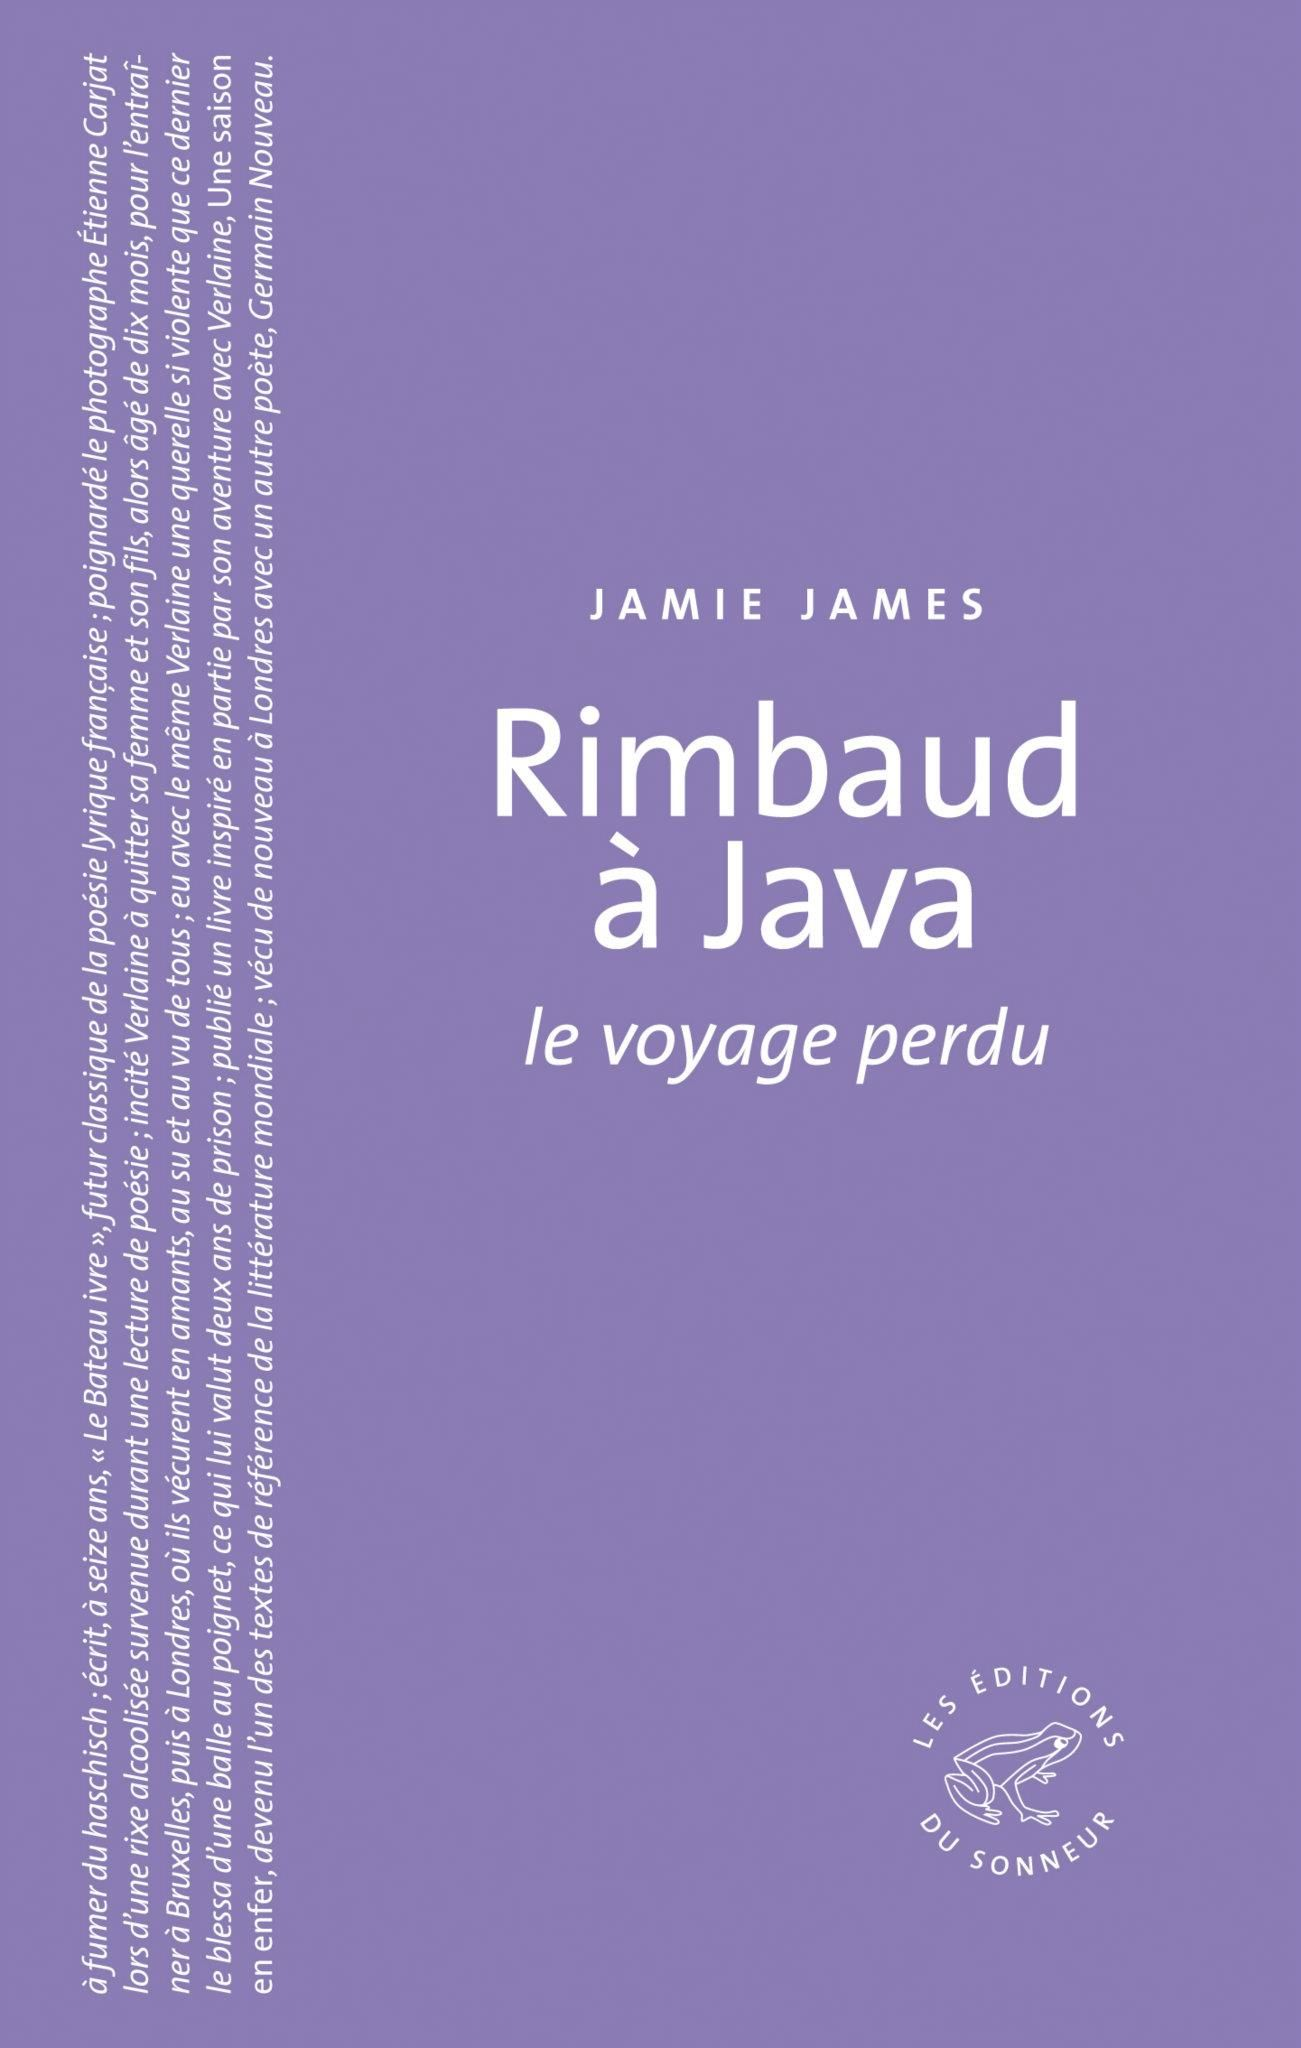 Jamie James - Rimbaud à Java